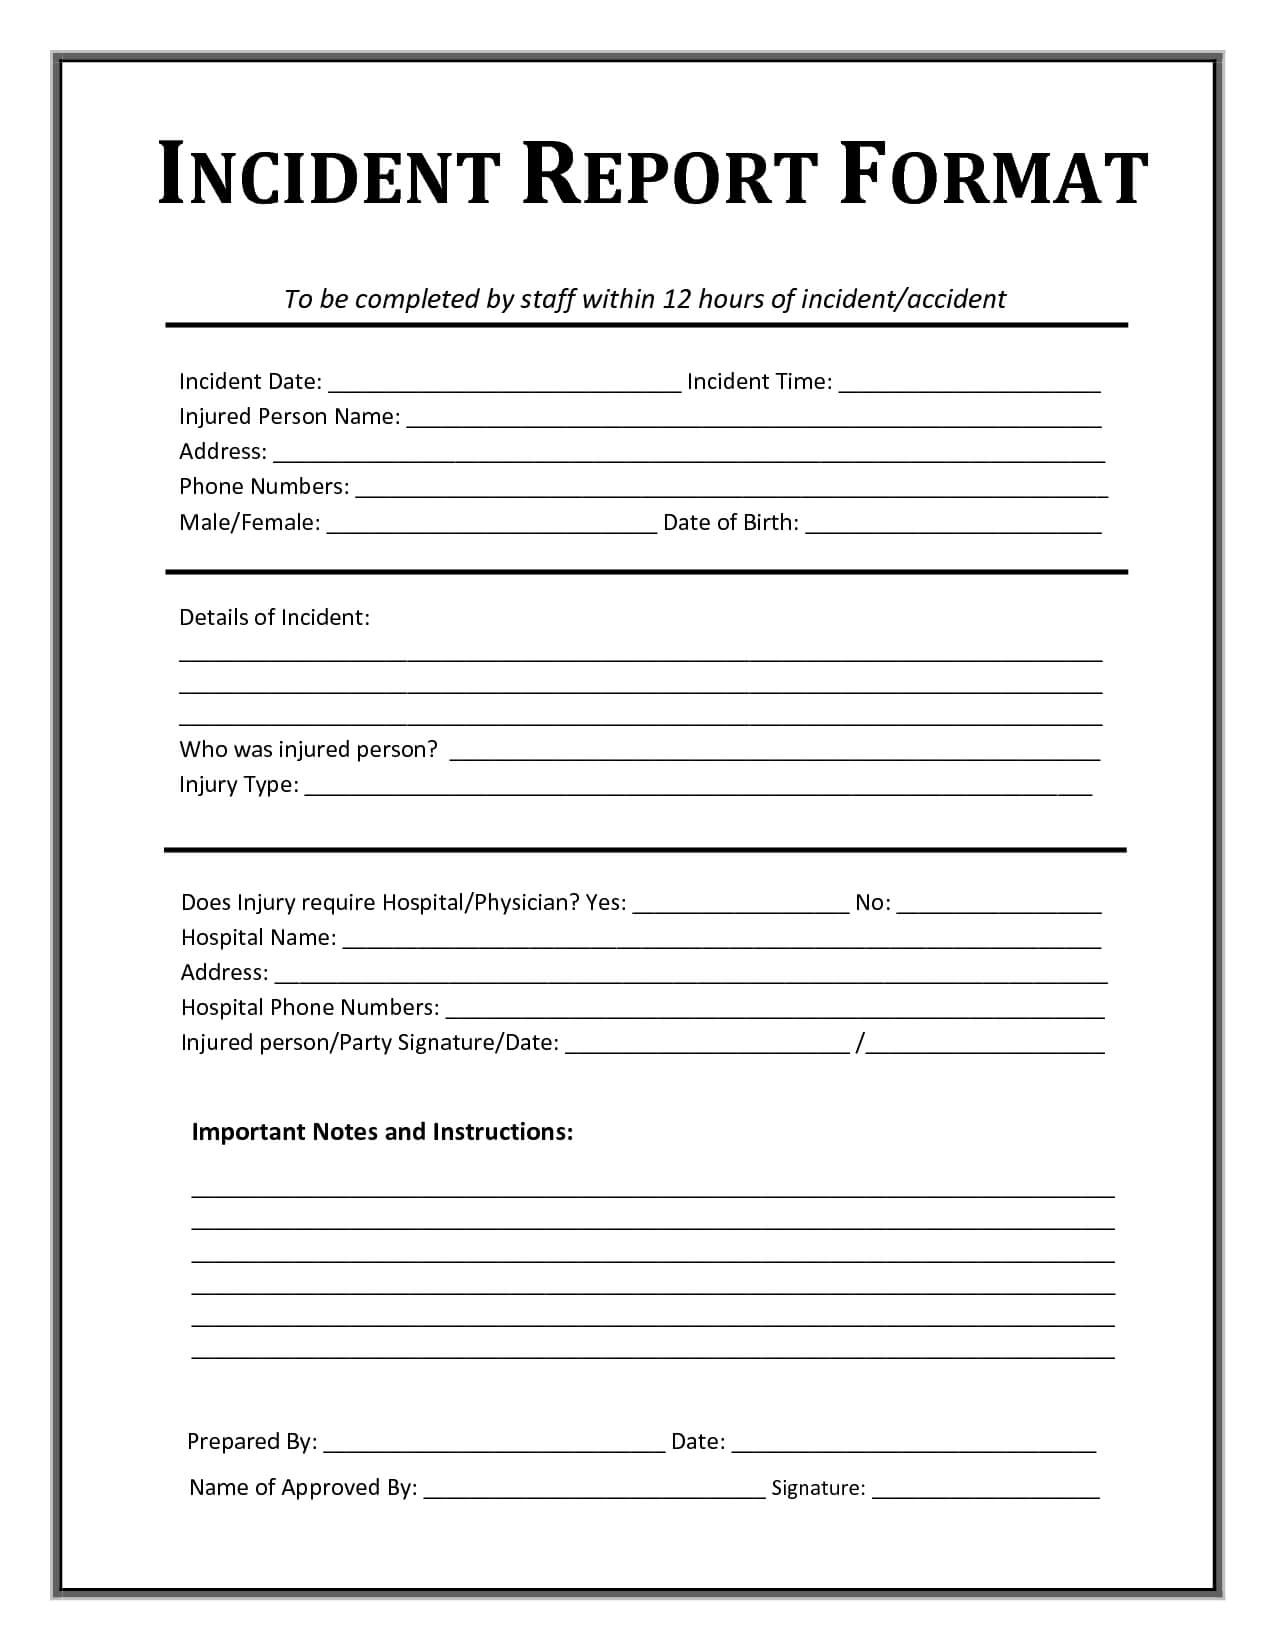 Incident Report Template | Incident Report Form, Incident Inside Customer Incident Report Form Template